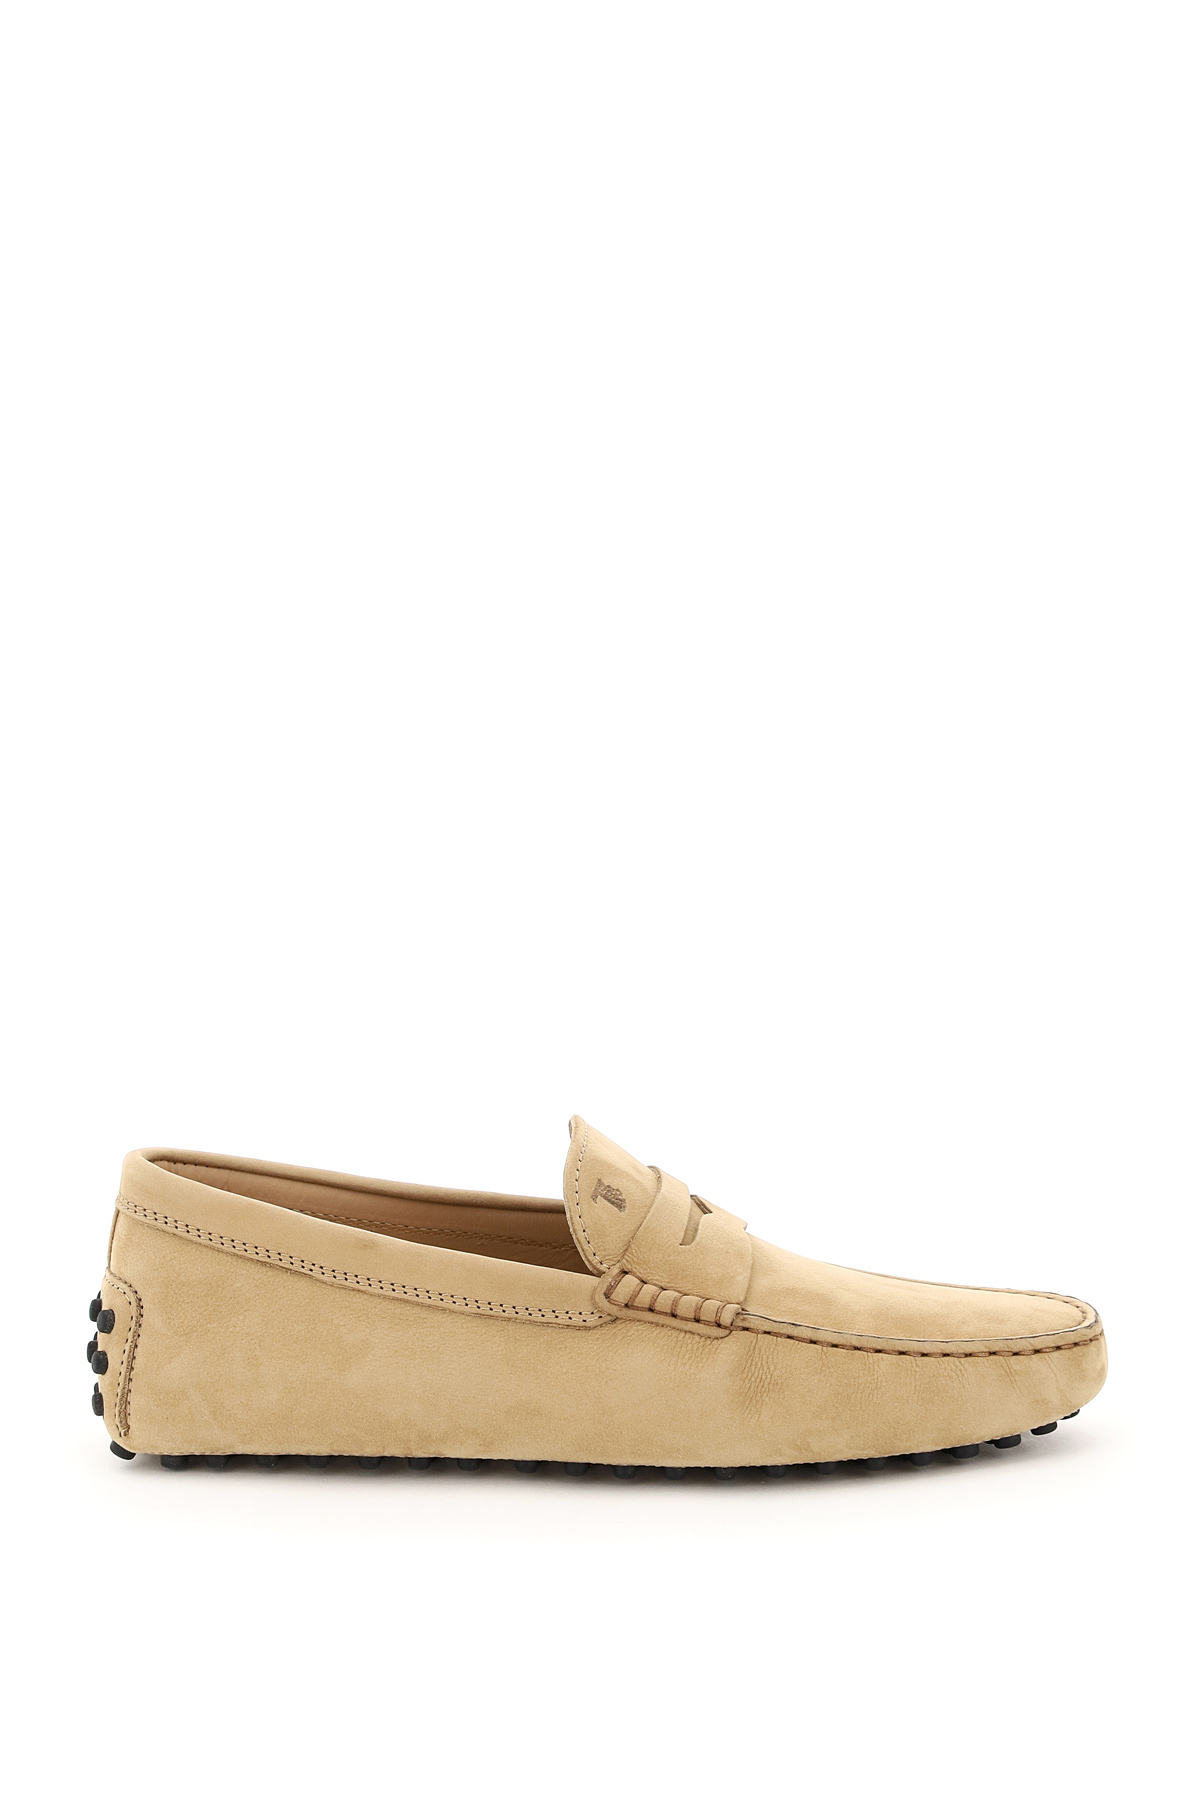 Tod's Leathers NUOVO GOMMINO DRIVER LOAFERS